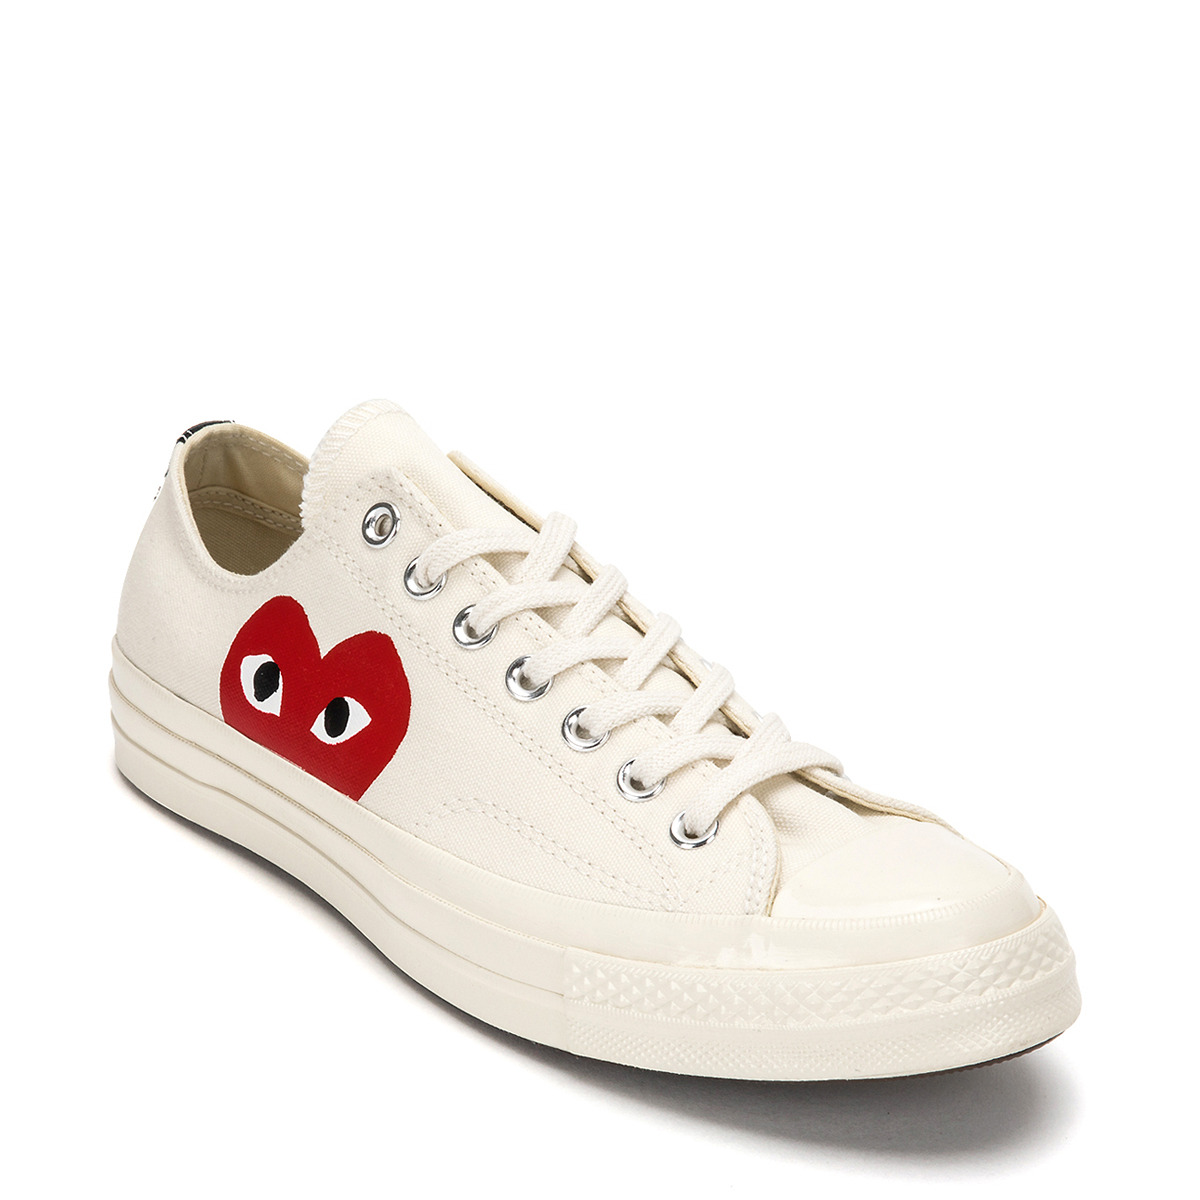 SHOPBOP - Converse FASTEST FREE SHIPPING WORLDWIDE on Converse & FREE EASY RETURNS.